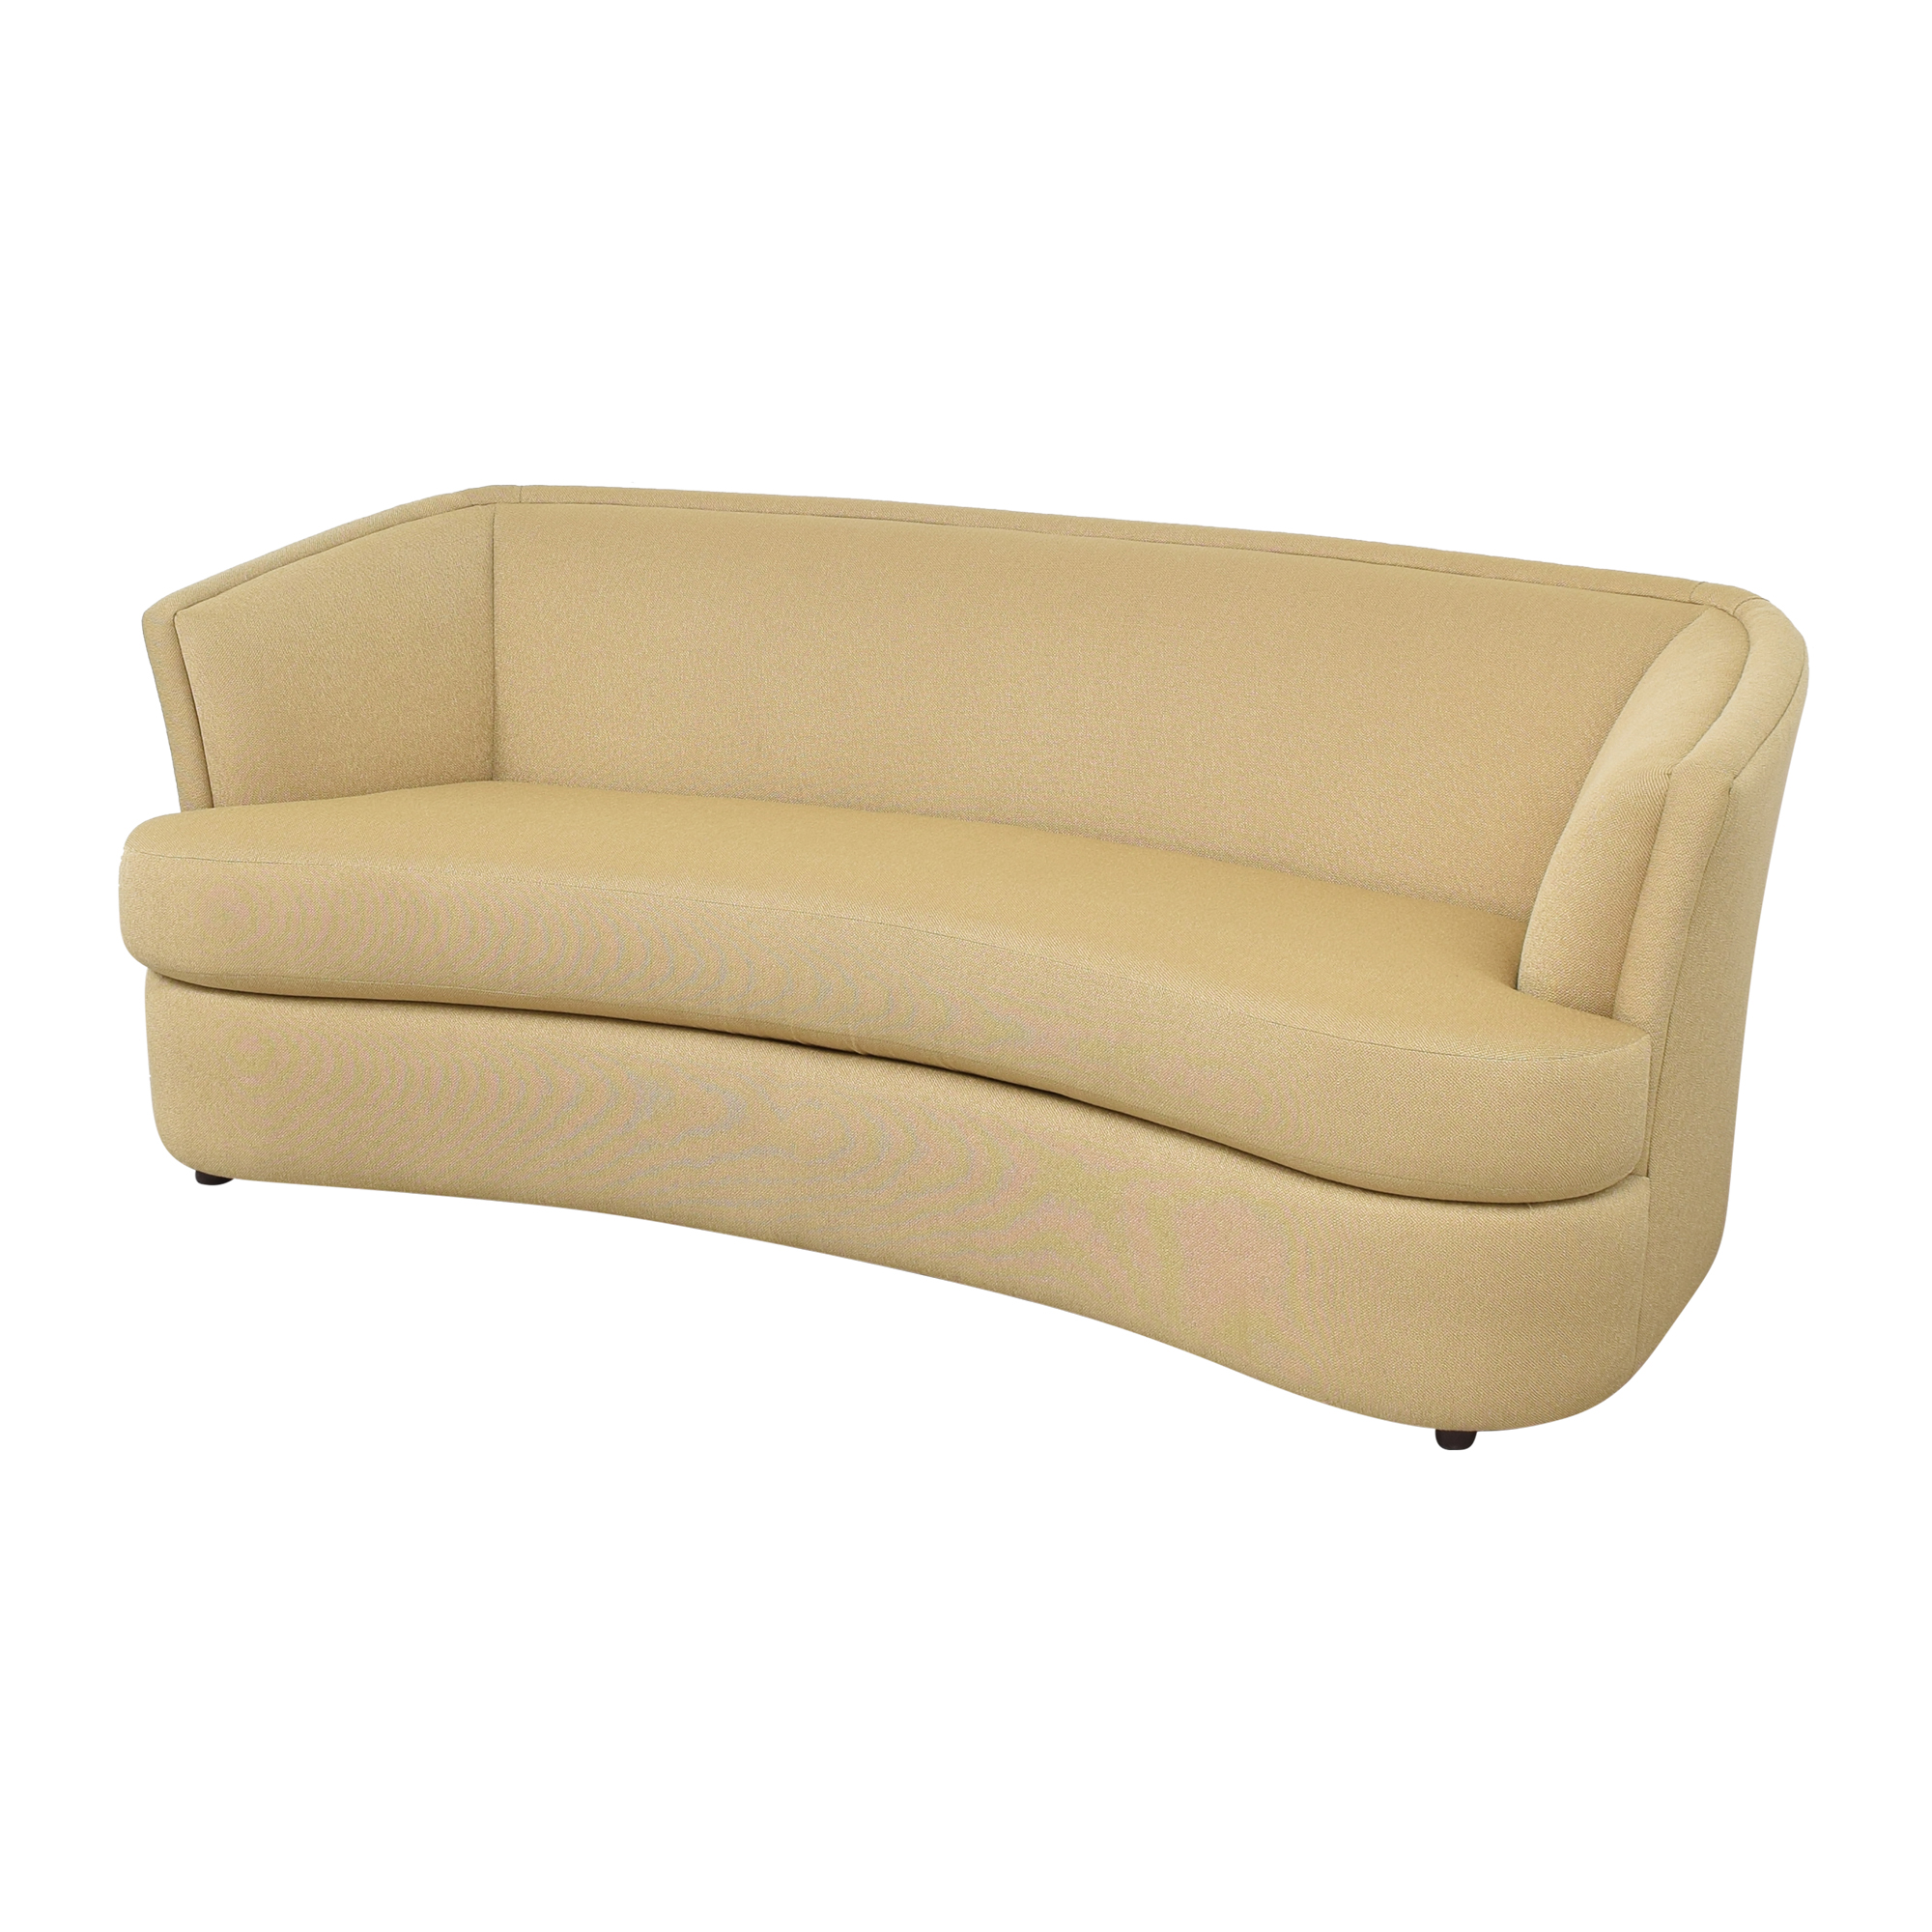 Safavieh Safavieh Curved Sofa nj